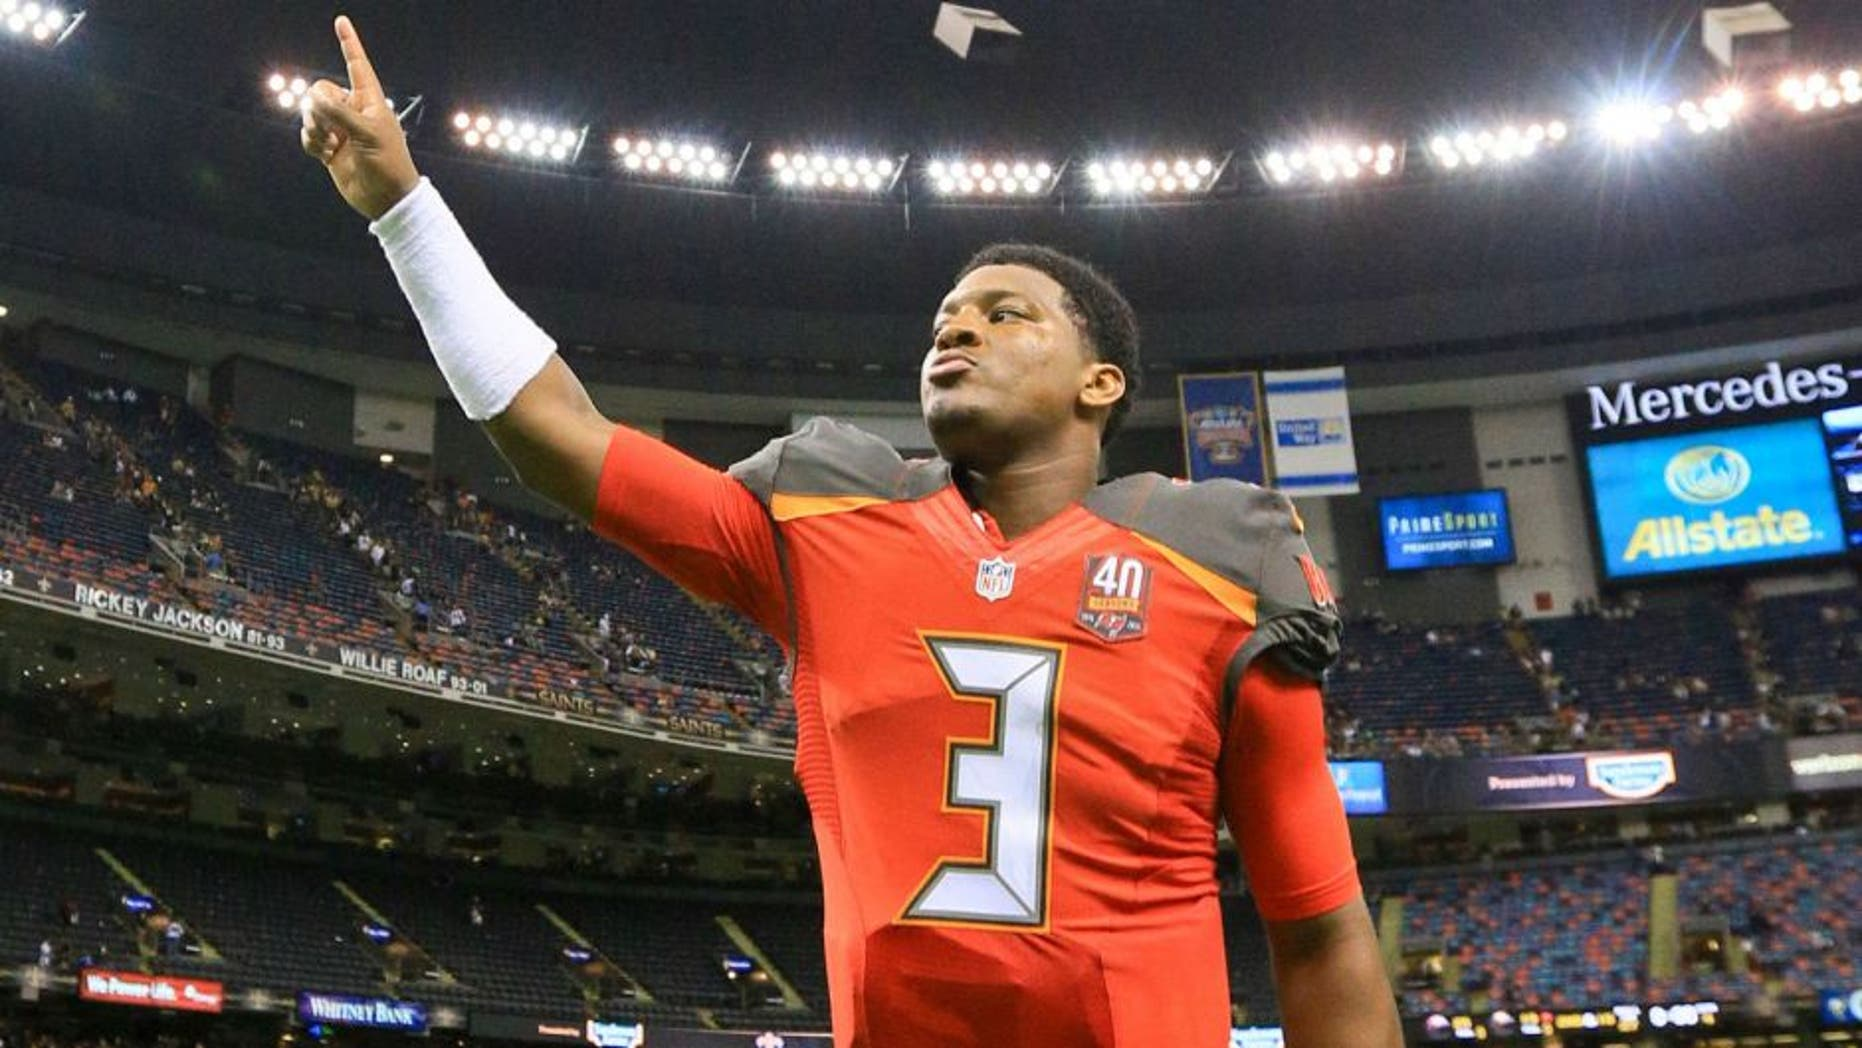 Sep 20, 2015; New Orleans, LA, USA; Tampa Bay Buccaneers quarterback Jameis Winston (3) celebrates as he leaves the field following his first career win in the NFL coming against the New Orleans Saints in a game at the Mercedes-Benz Superdome. The Buccaneers defeated the Saints 26-19. Mandatory Credit: Derick E. Hingle-USA TODAY Sports